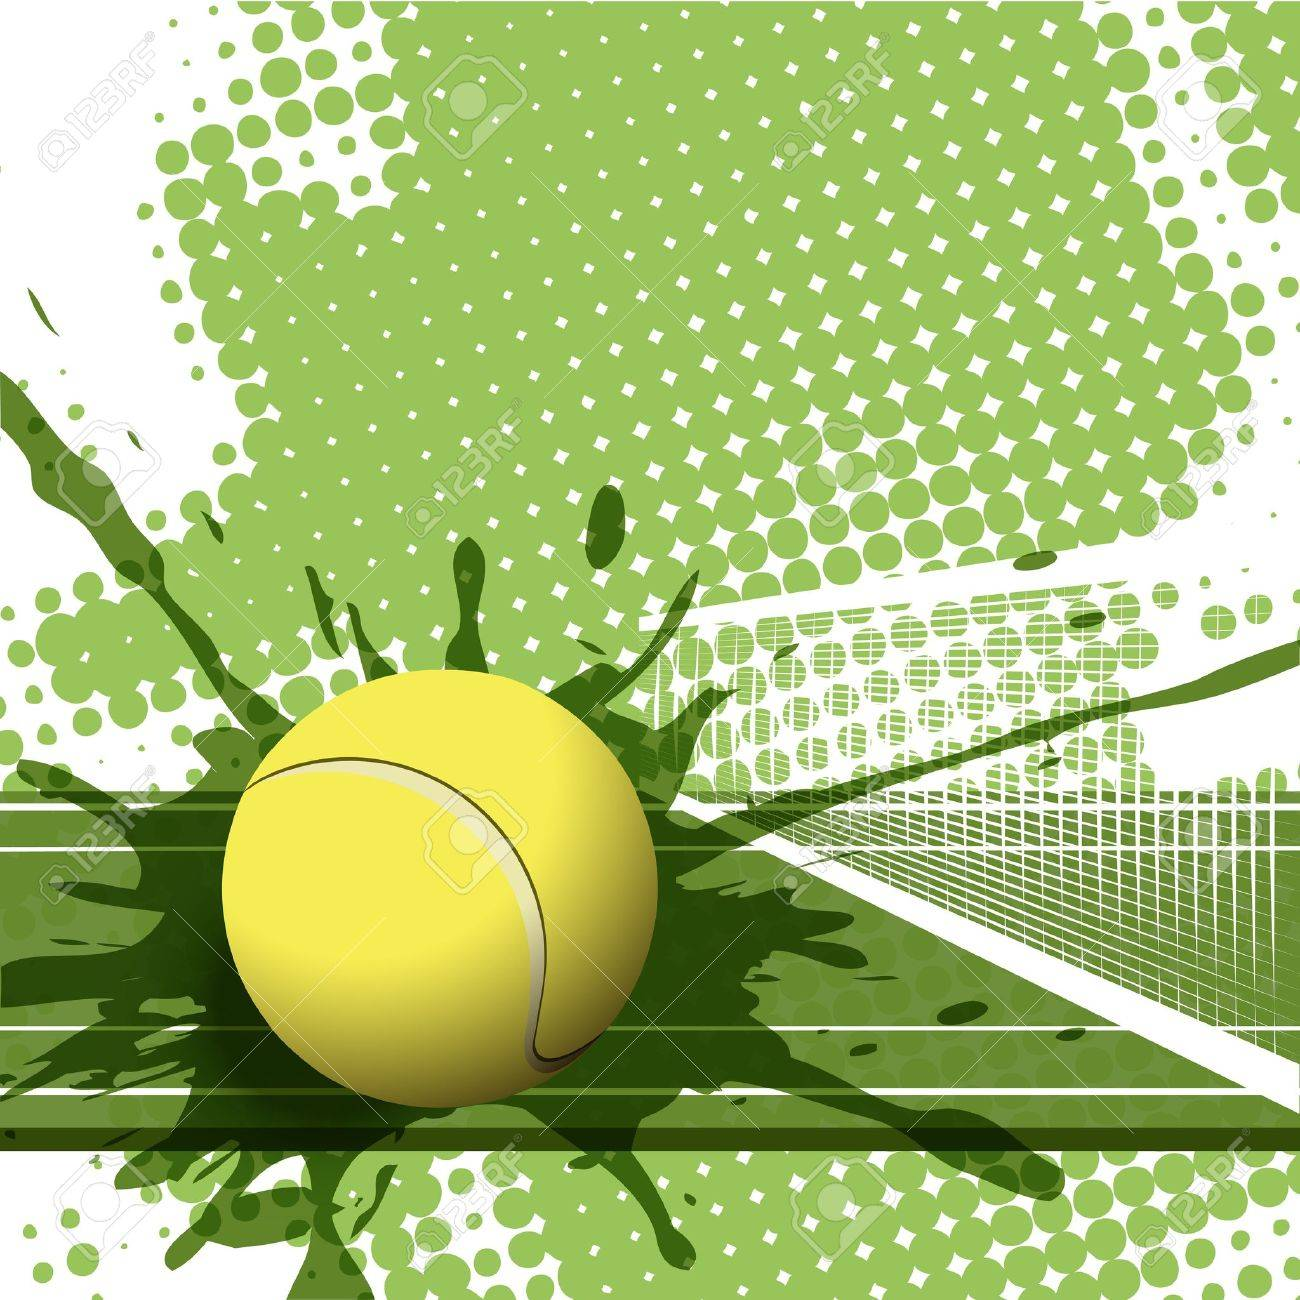 Illustration Tennis Ball On Abstract Green Background Royalty Free